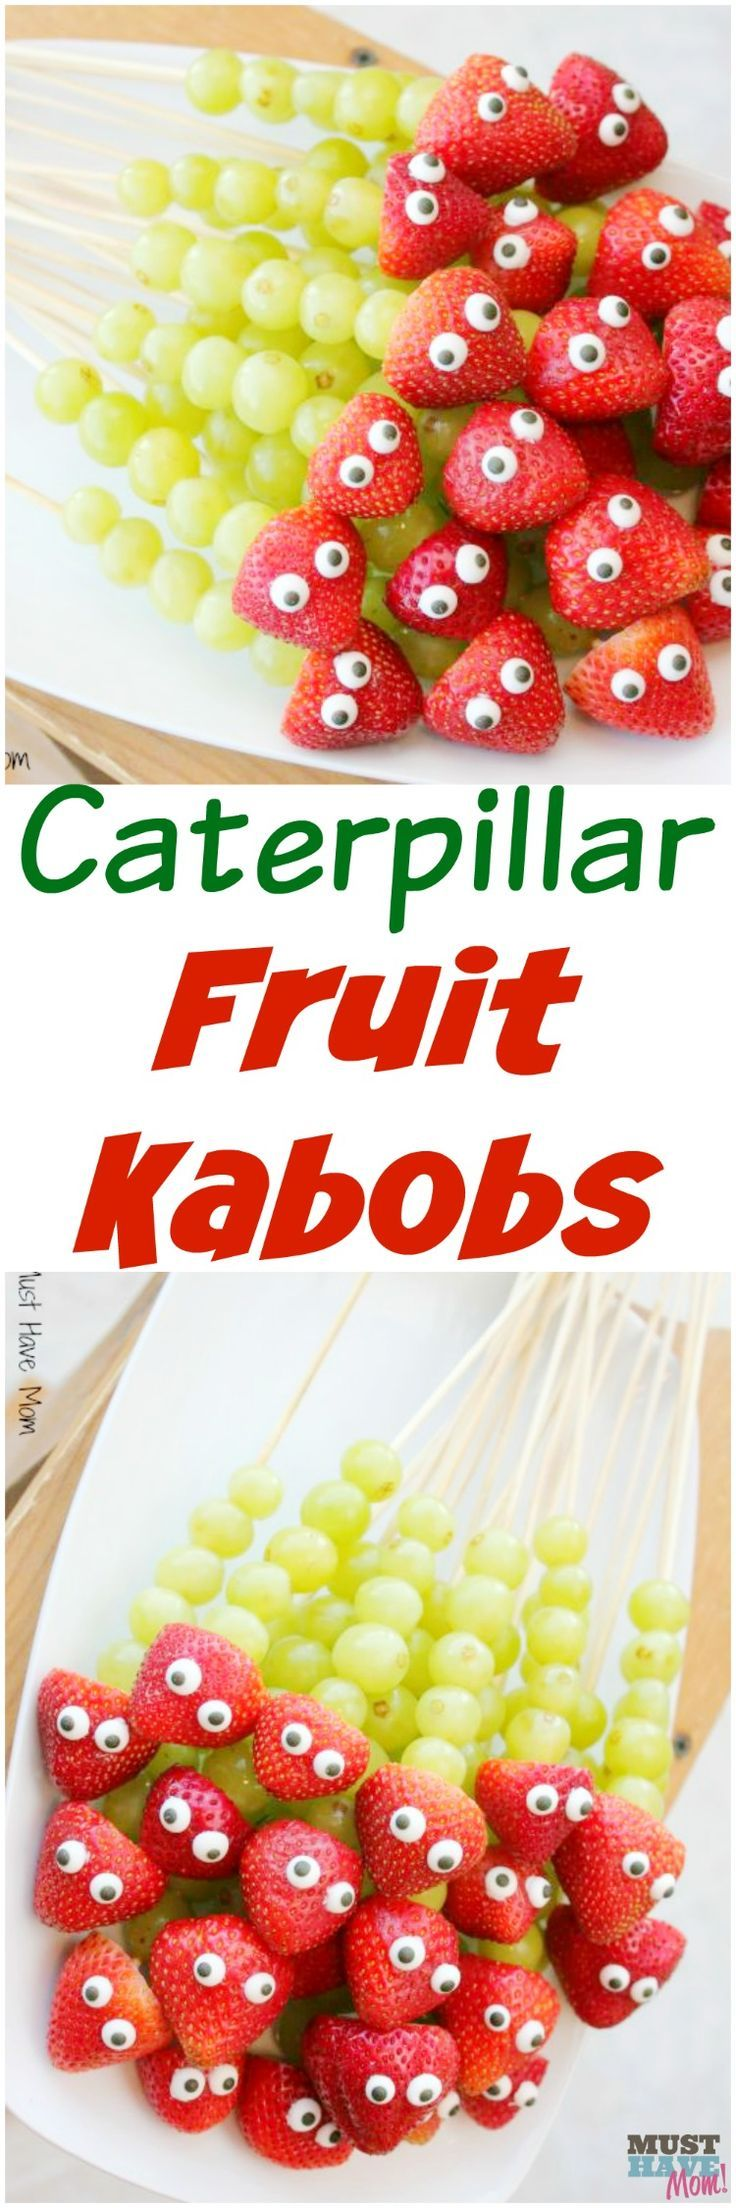 Easy healthy food ideas - Easy Caterpillar Fruit Kabobs Party Food Ideas Great Healthy Party Food For Kids That Is